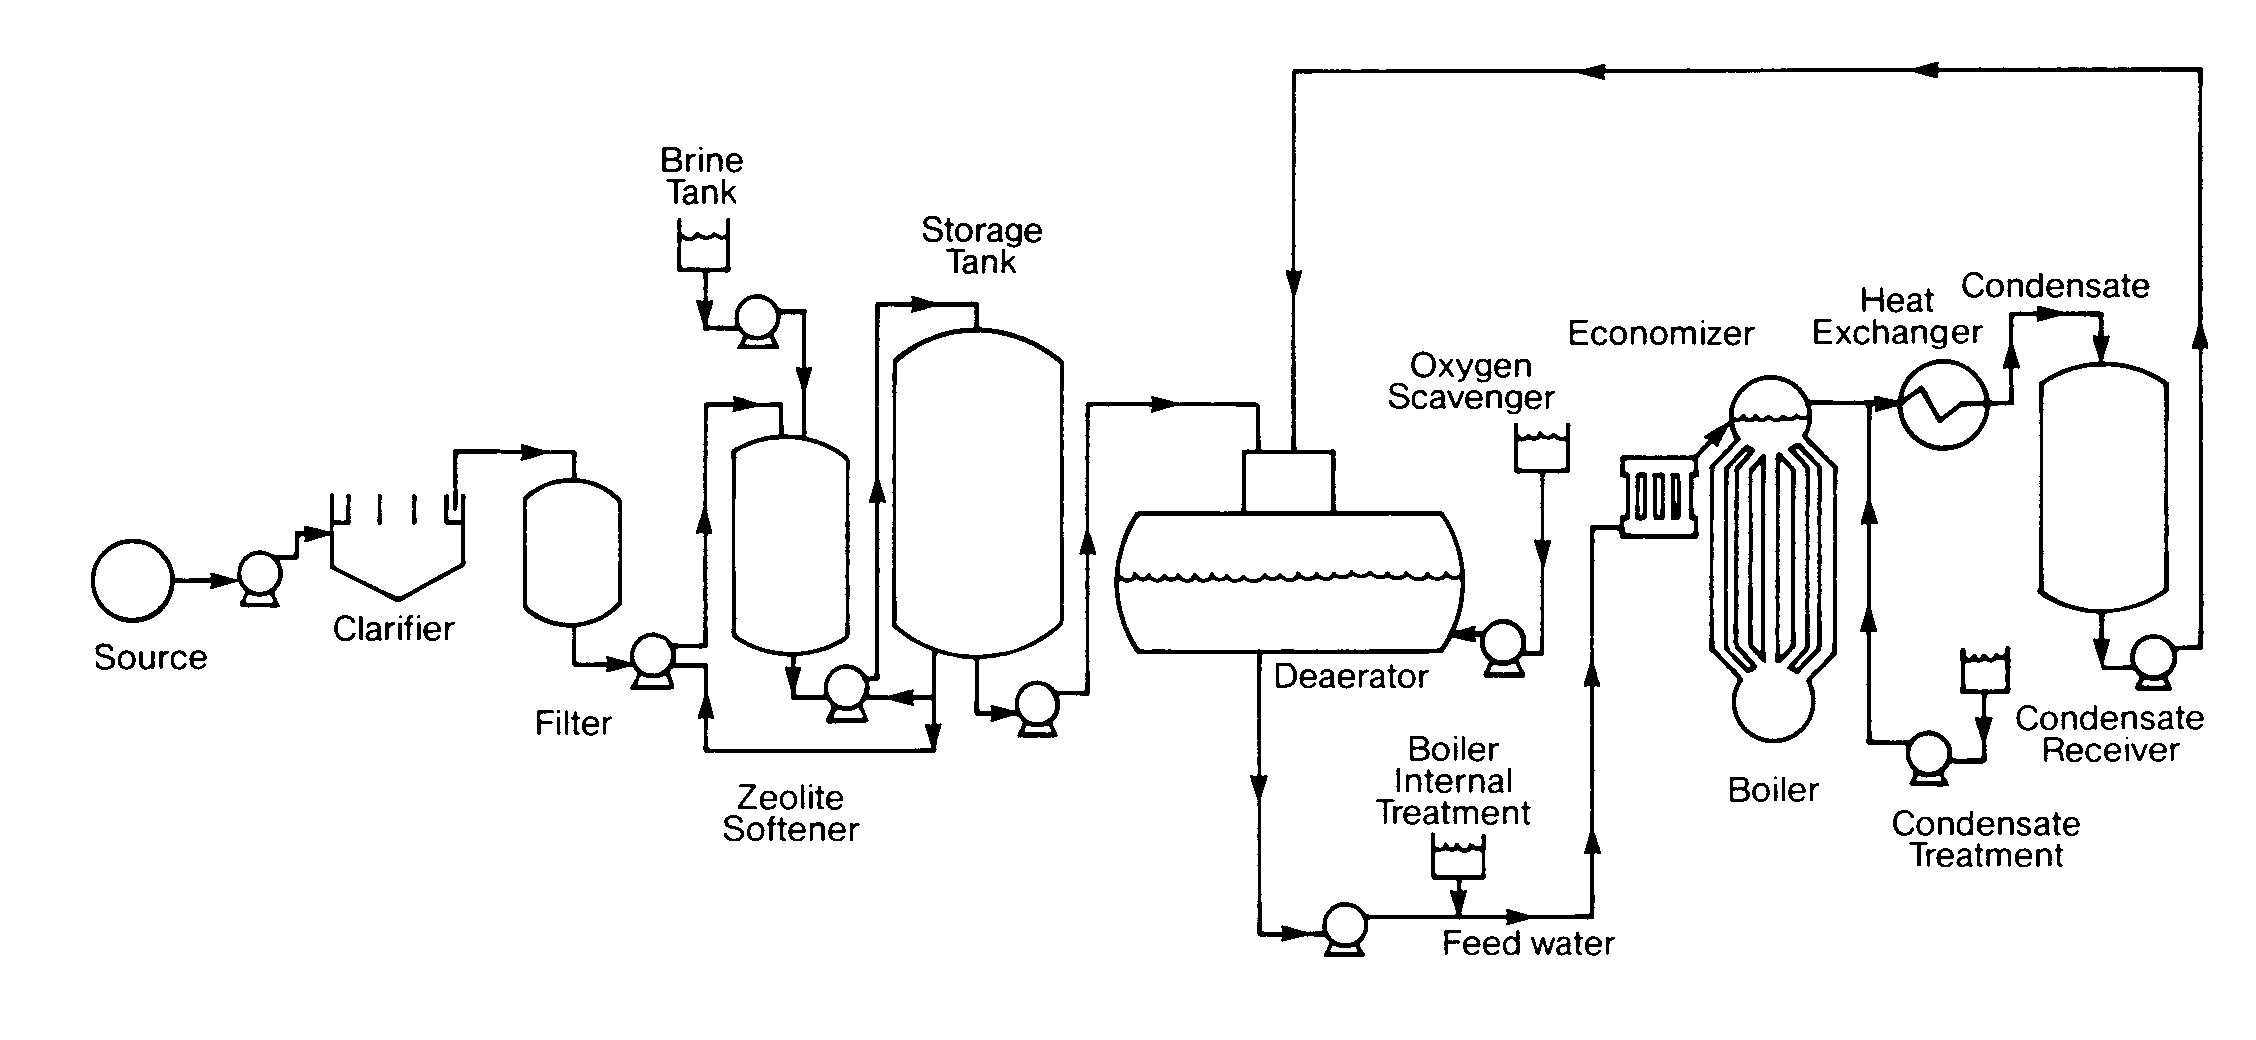 Process Flow Diagram Of Car Engine